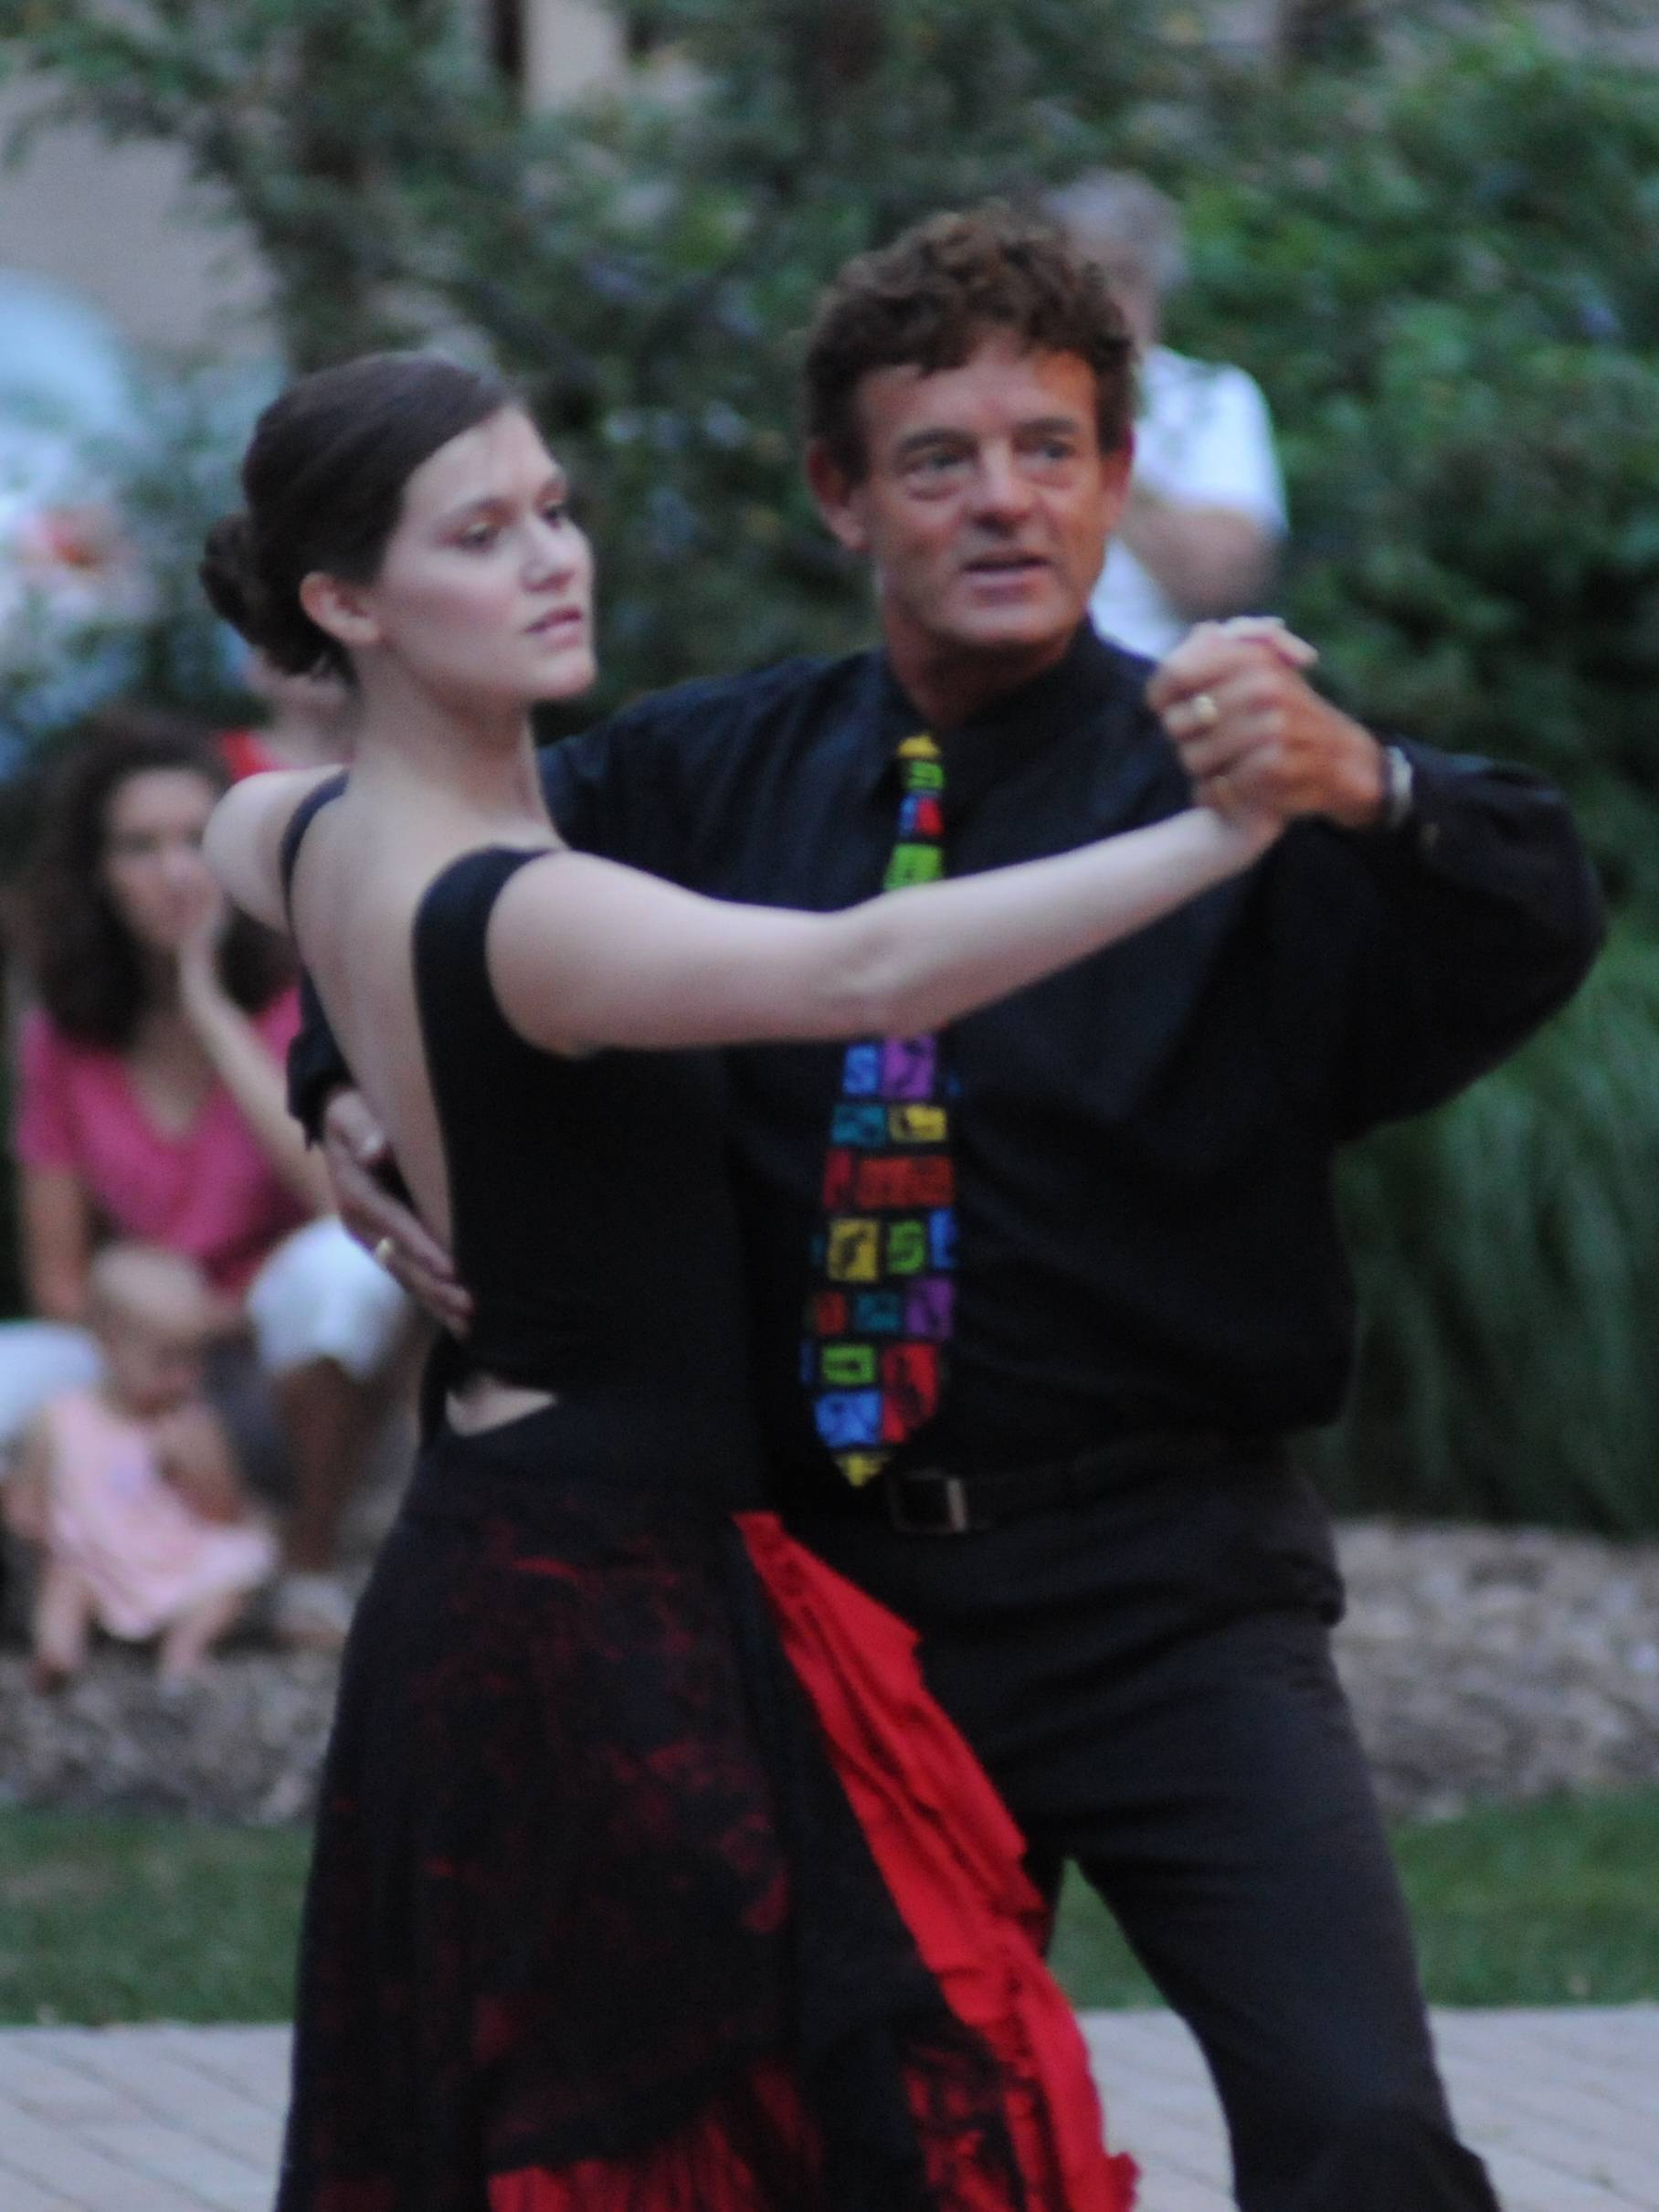 Dancers from DeSarge Danceworld will present a pre-concert dance lesson at 6:30 PM prior to the Wheaton Municipal Band concert on Thursday July 12.